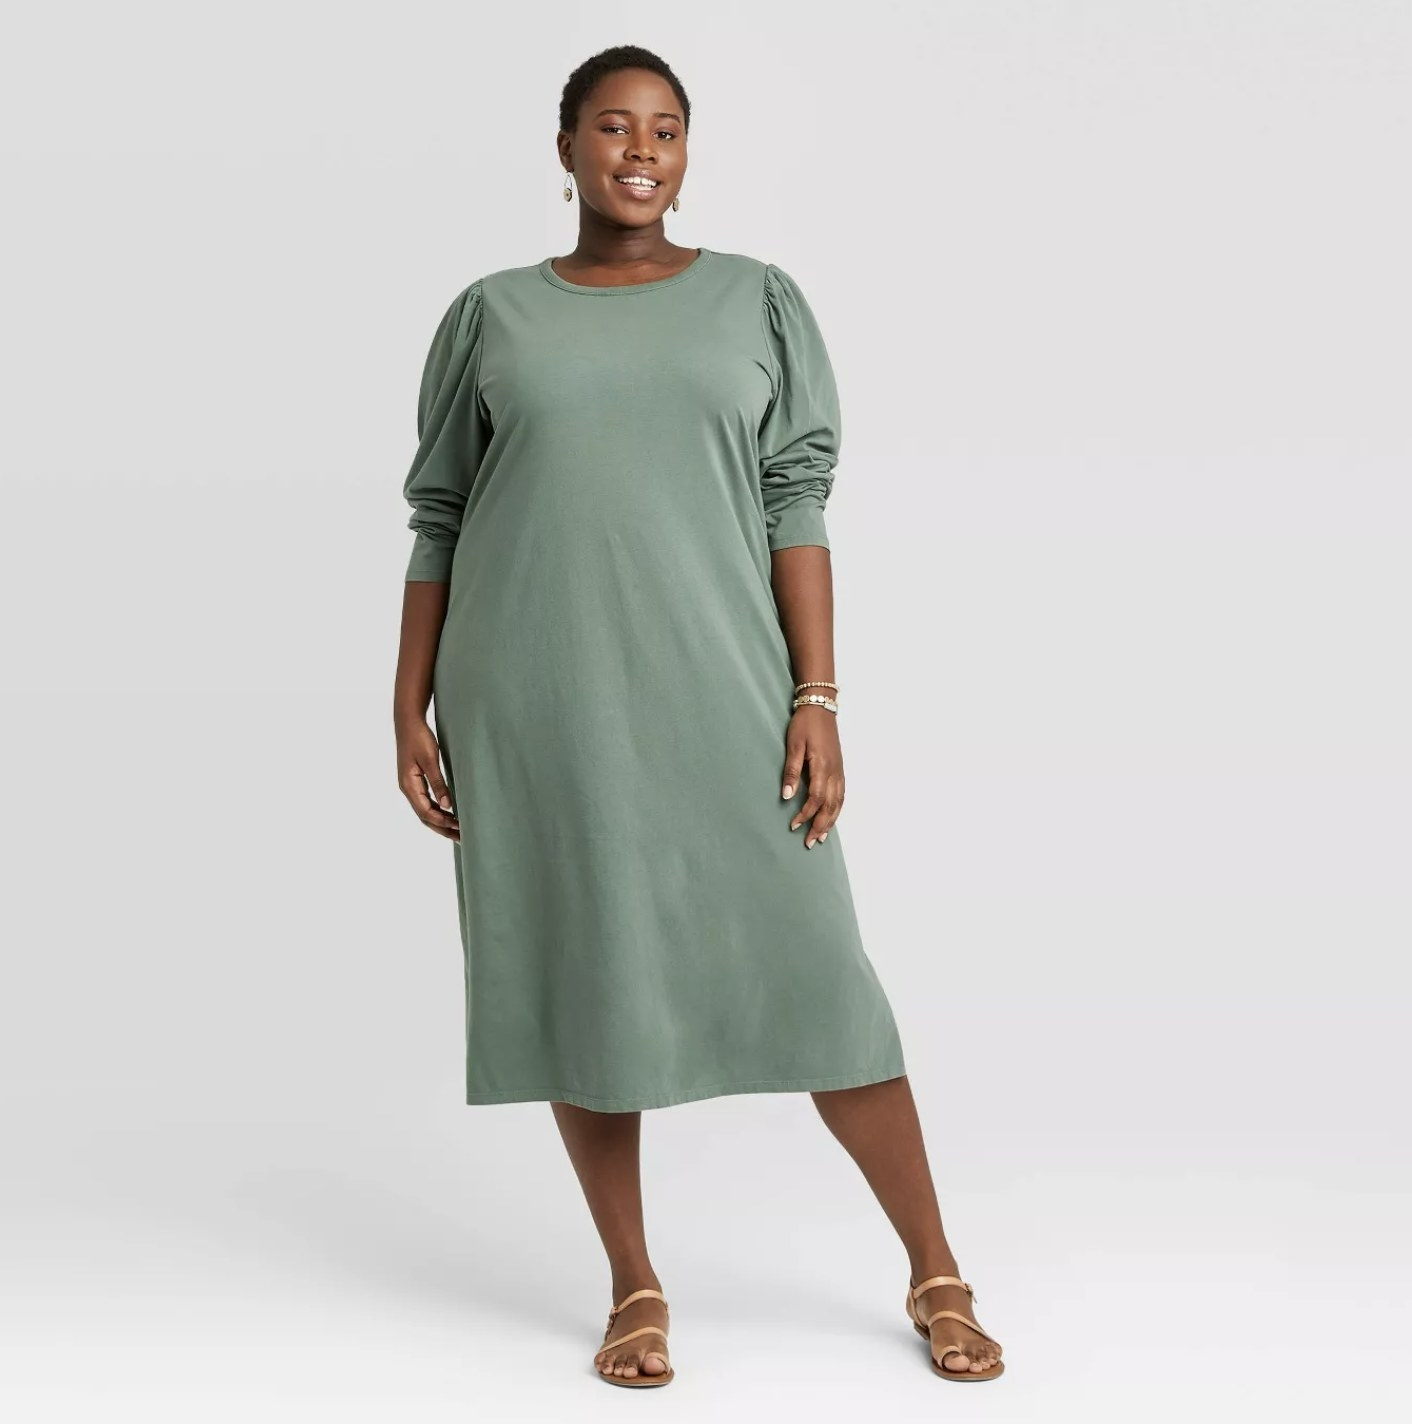 Model is wearing a muted green long puff sleeve midi dress